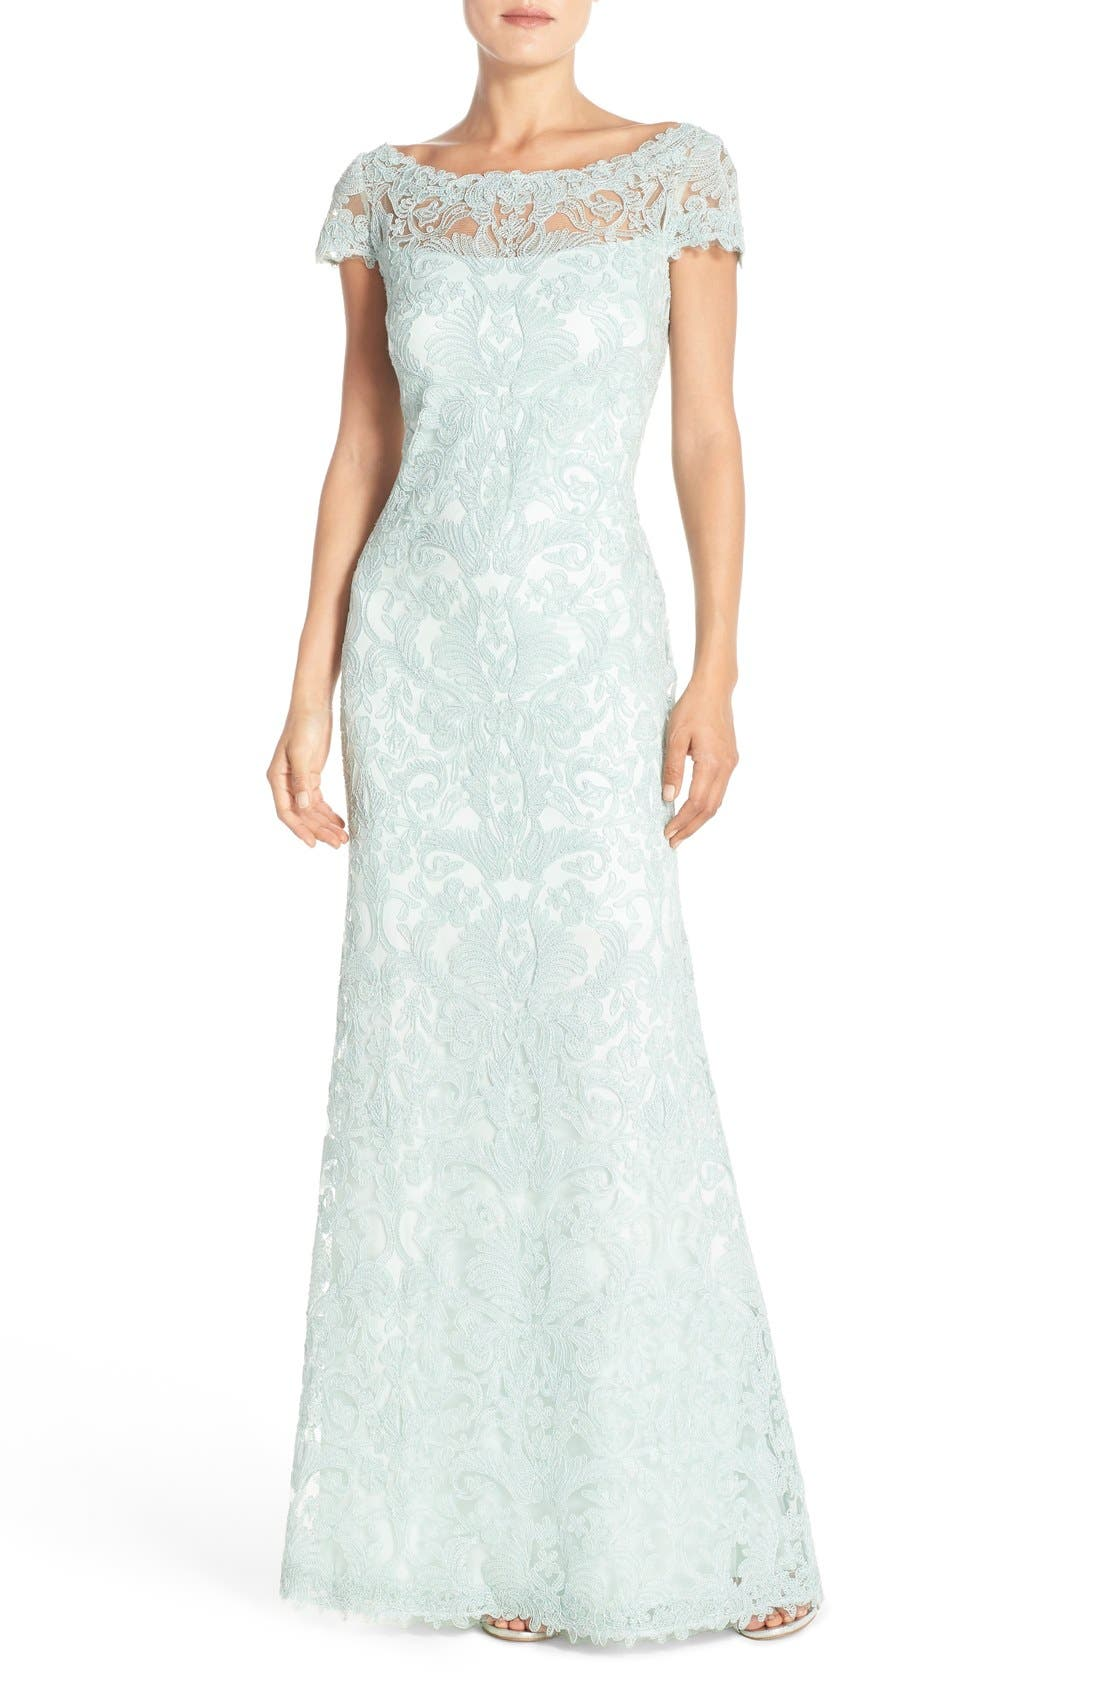 Alternate Image 1 Selected - Tadashi Shoji Illusion Yoke Gown (Regular & Petite)